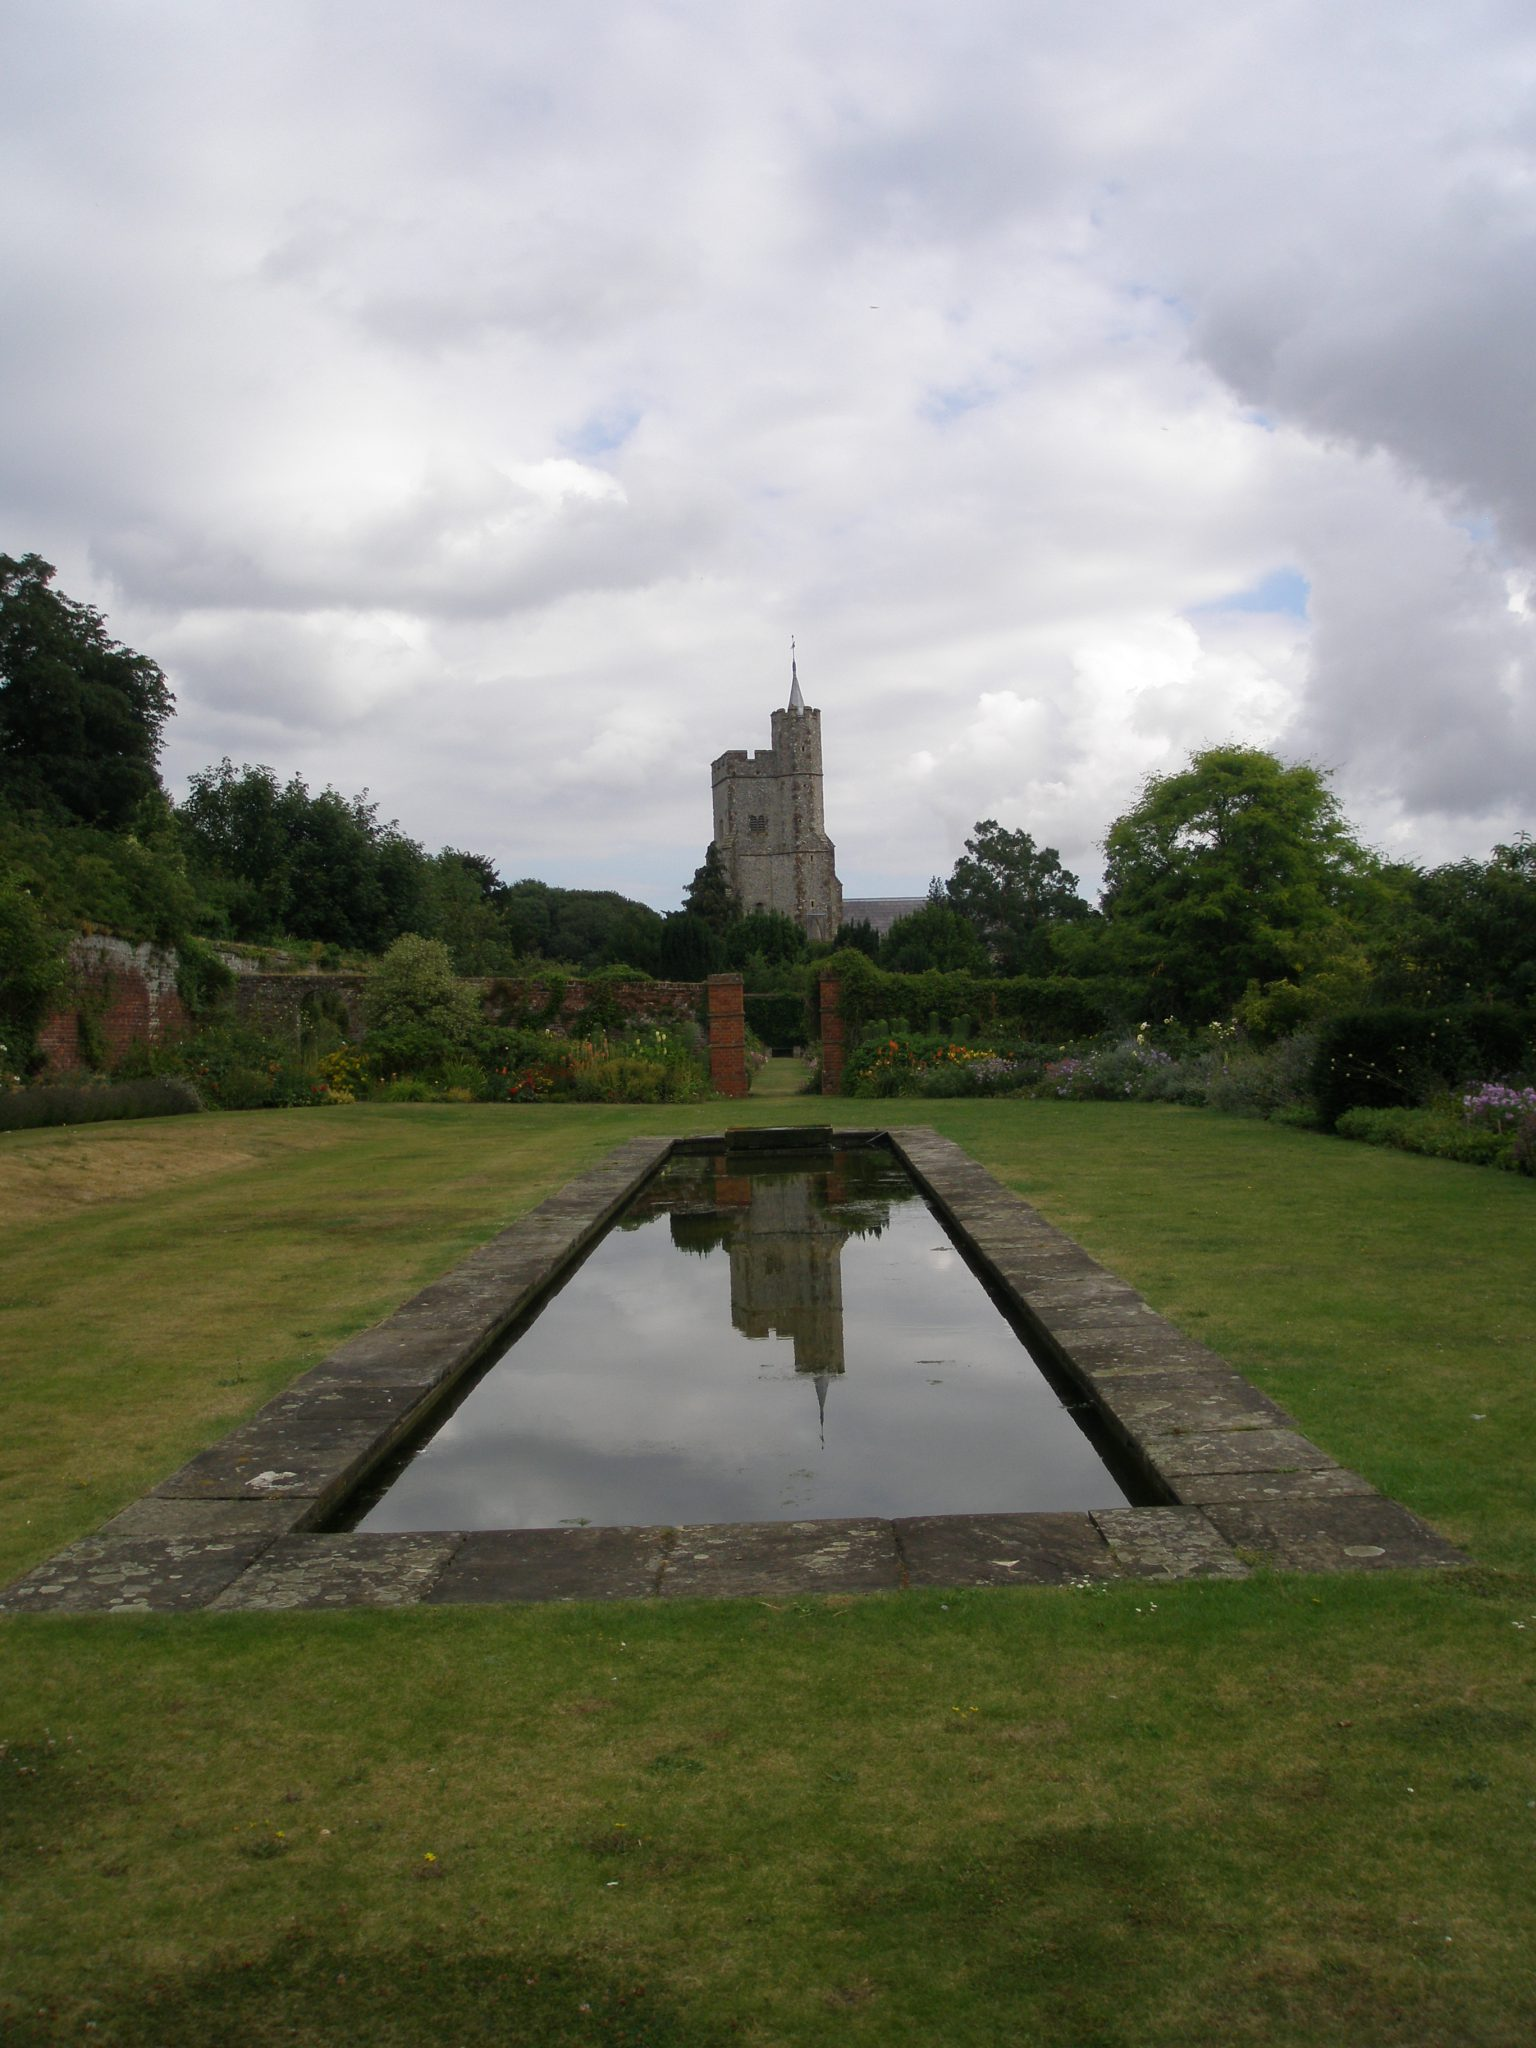 This central section of the Walled Garden is new: created in 2009, when old plantings were removed so that the ground could be leveled. After an 8-foot-slope had been flattened, a long, rectangular pool was placed in the center of the garden.